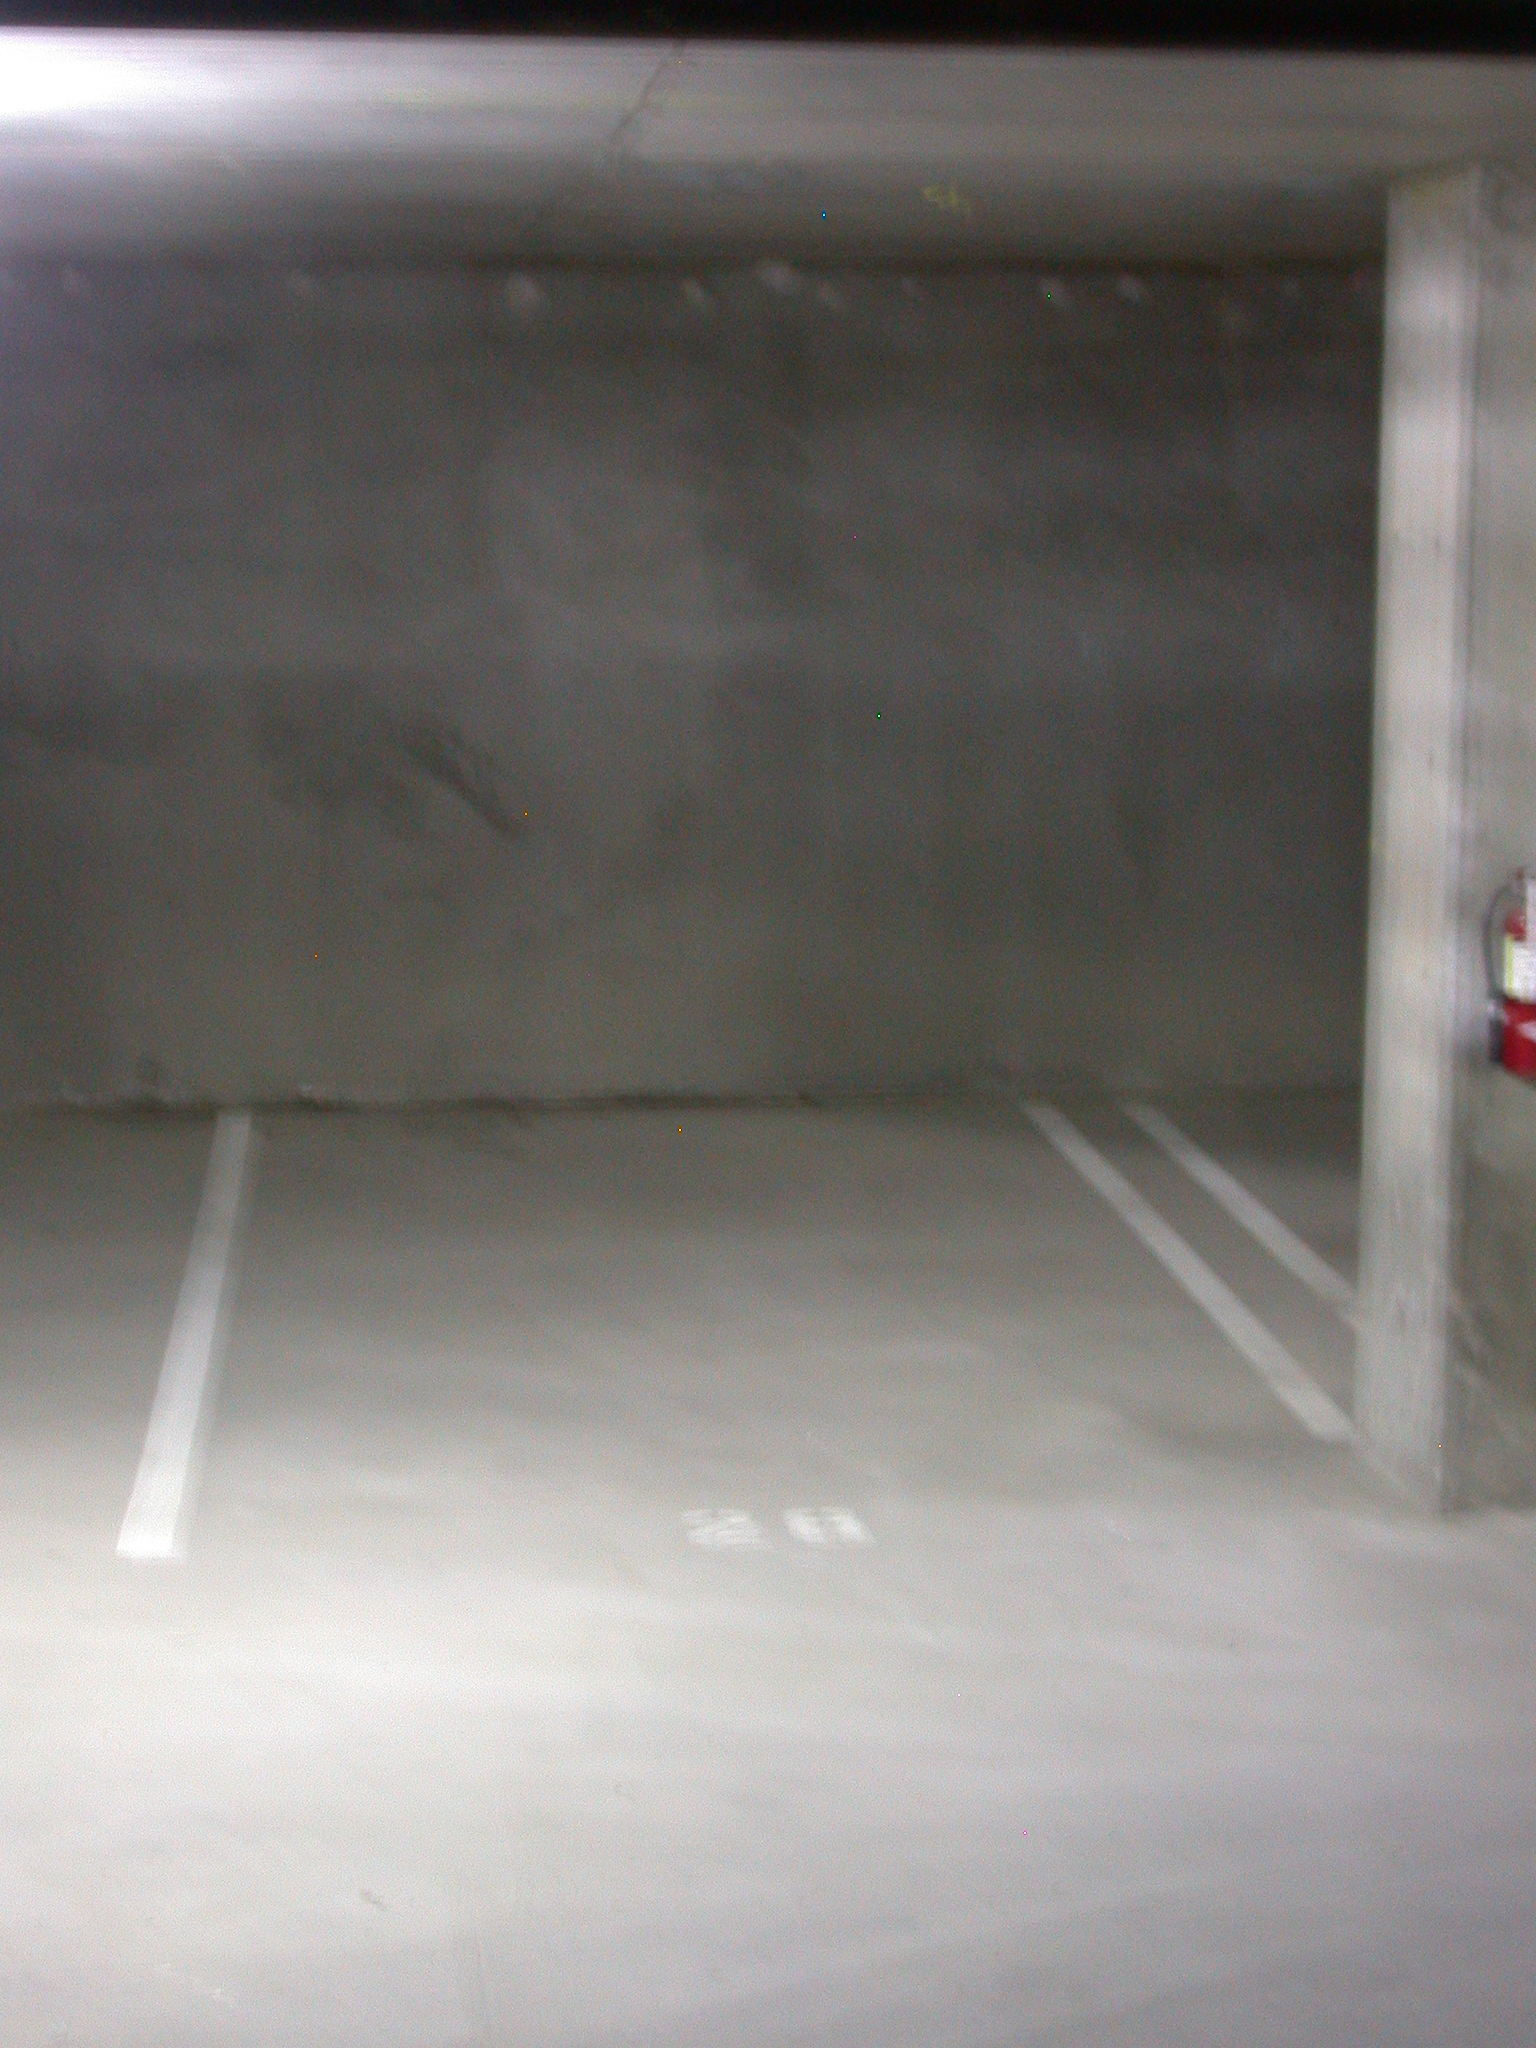 One of the Basement Parking Spots Assigned to Moms Condominium